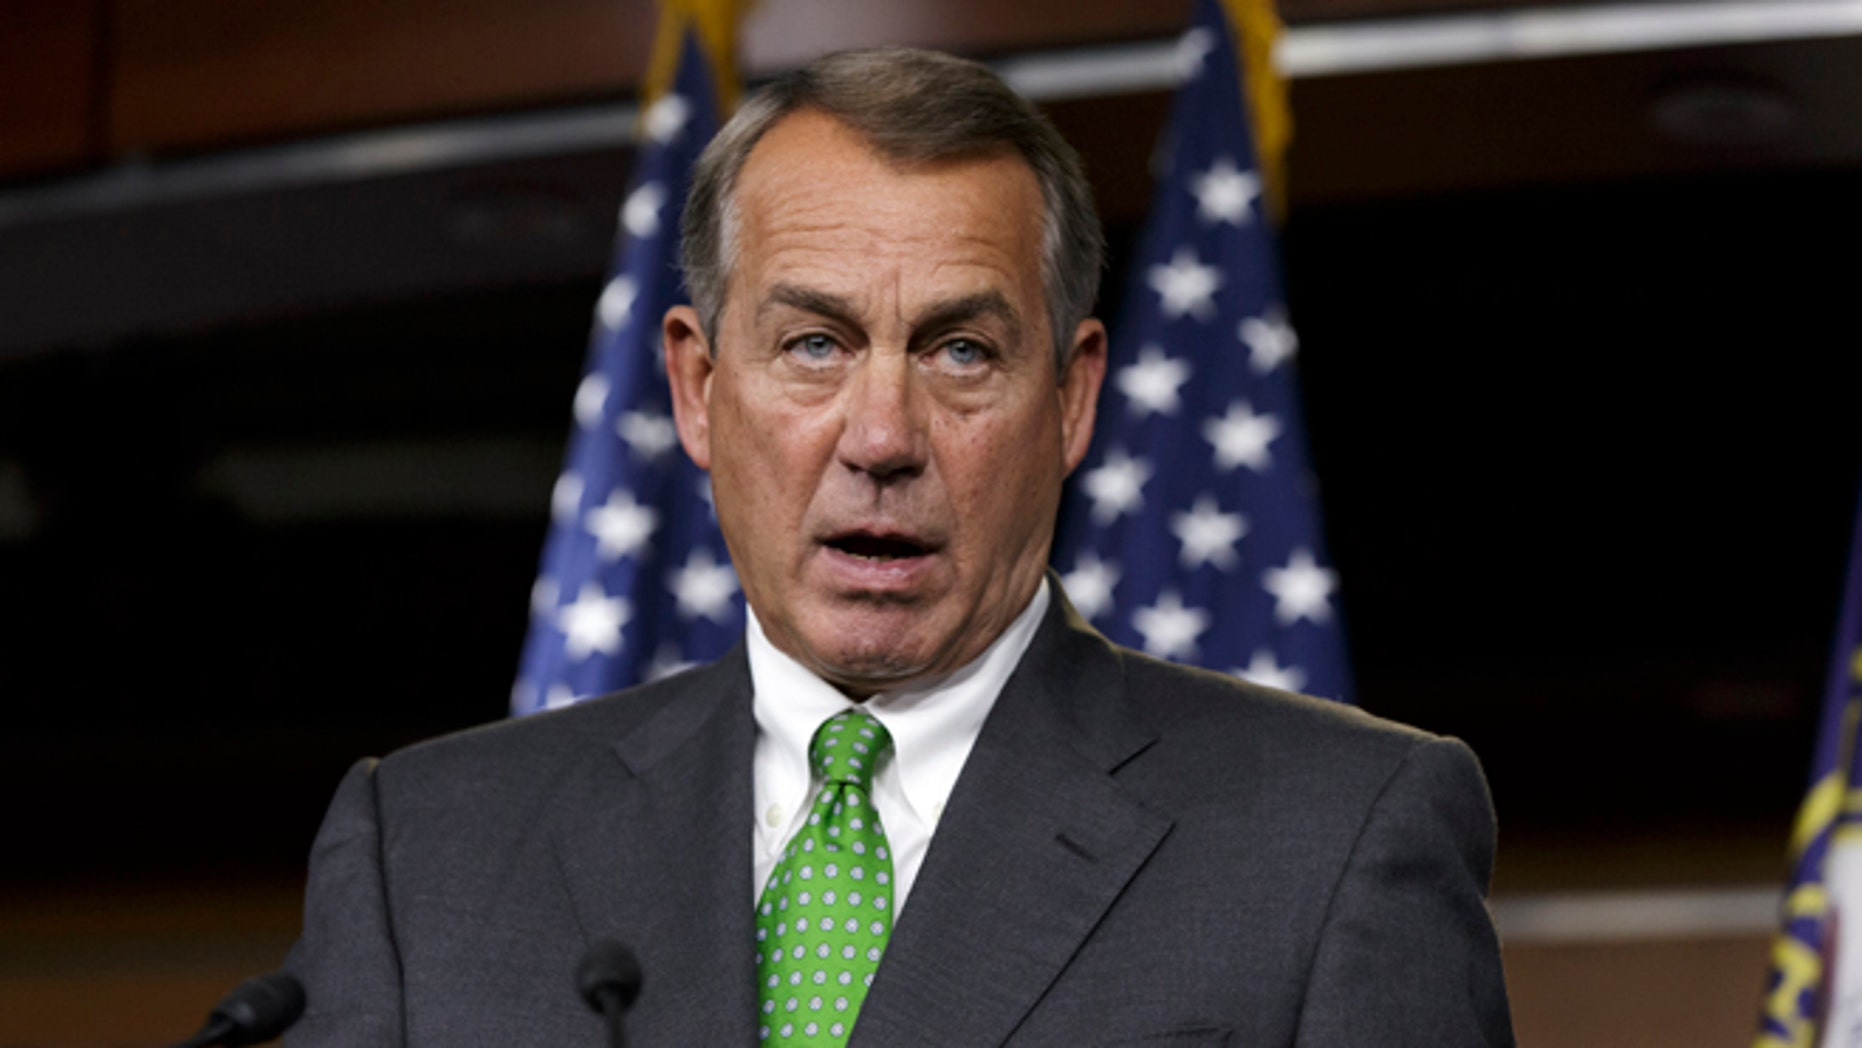 In this Thursday, Sept. 11, 2014 photo, House Speaker John Boehner of Ohio speaks during a news conference on Capitol Hill in Washington.